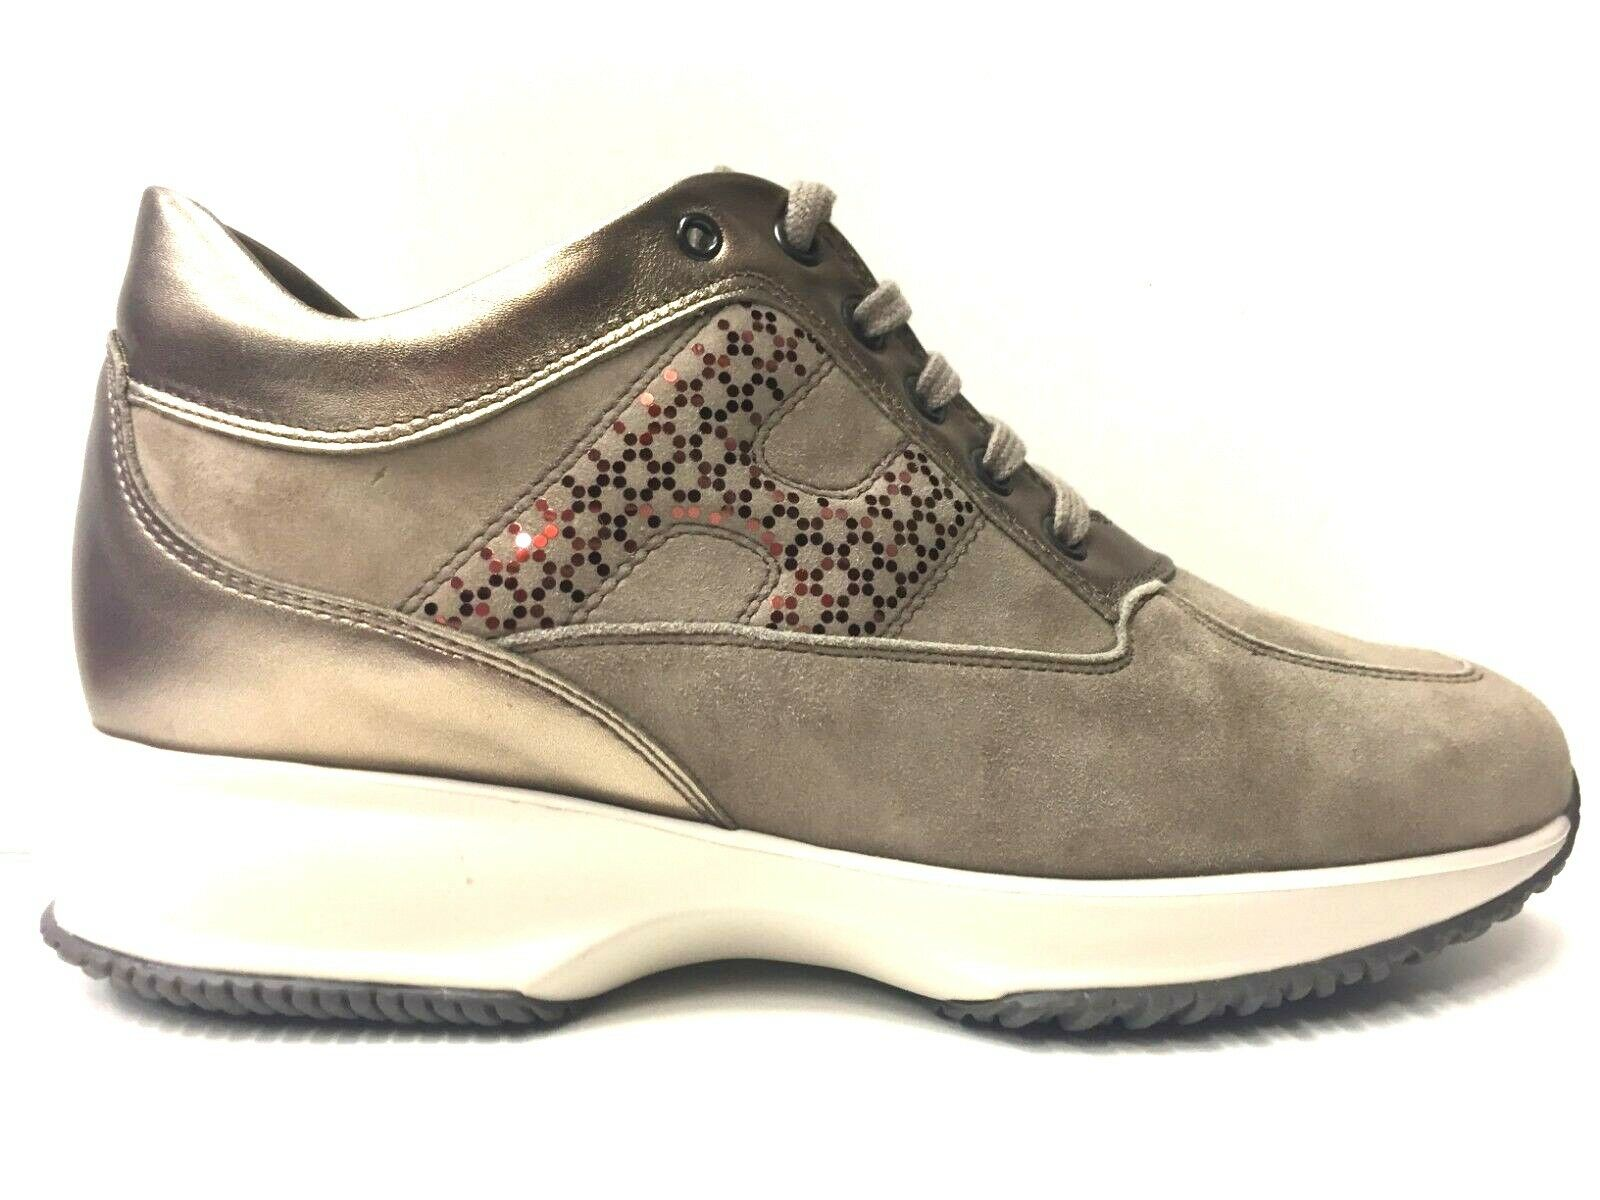 SCARPE SNEAKERS CASUAL DONNA HOGAN ORIGINALE INTERACTIVE LAV. H PELLE A/I NEW